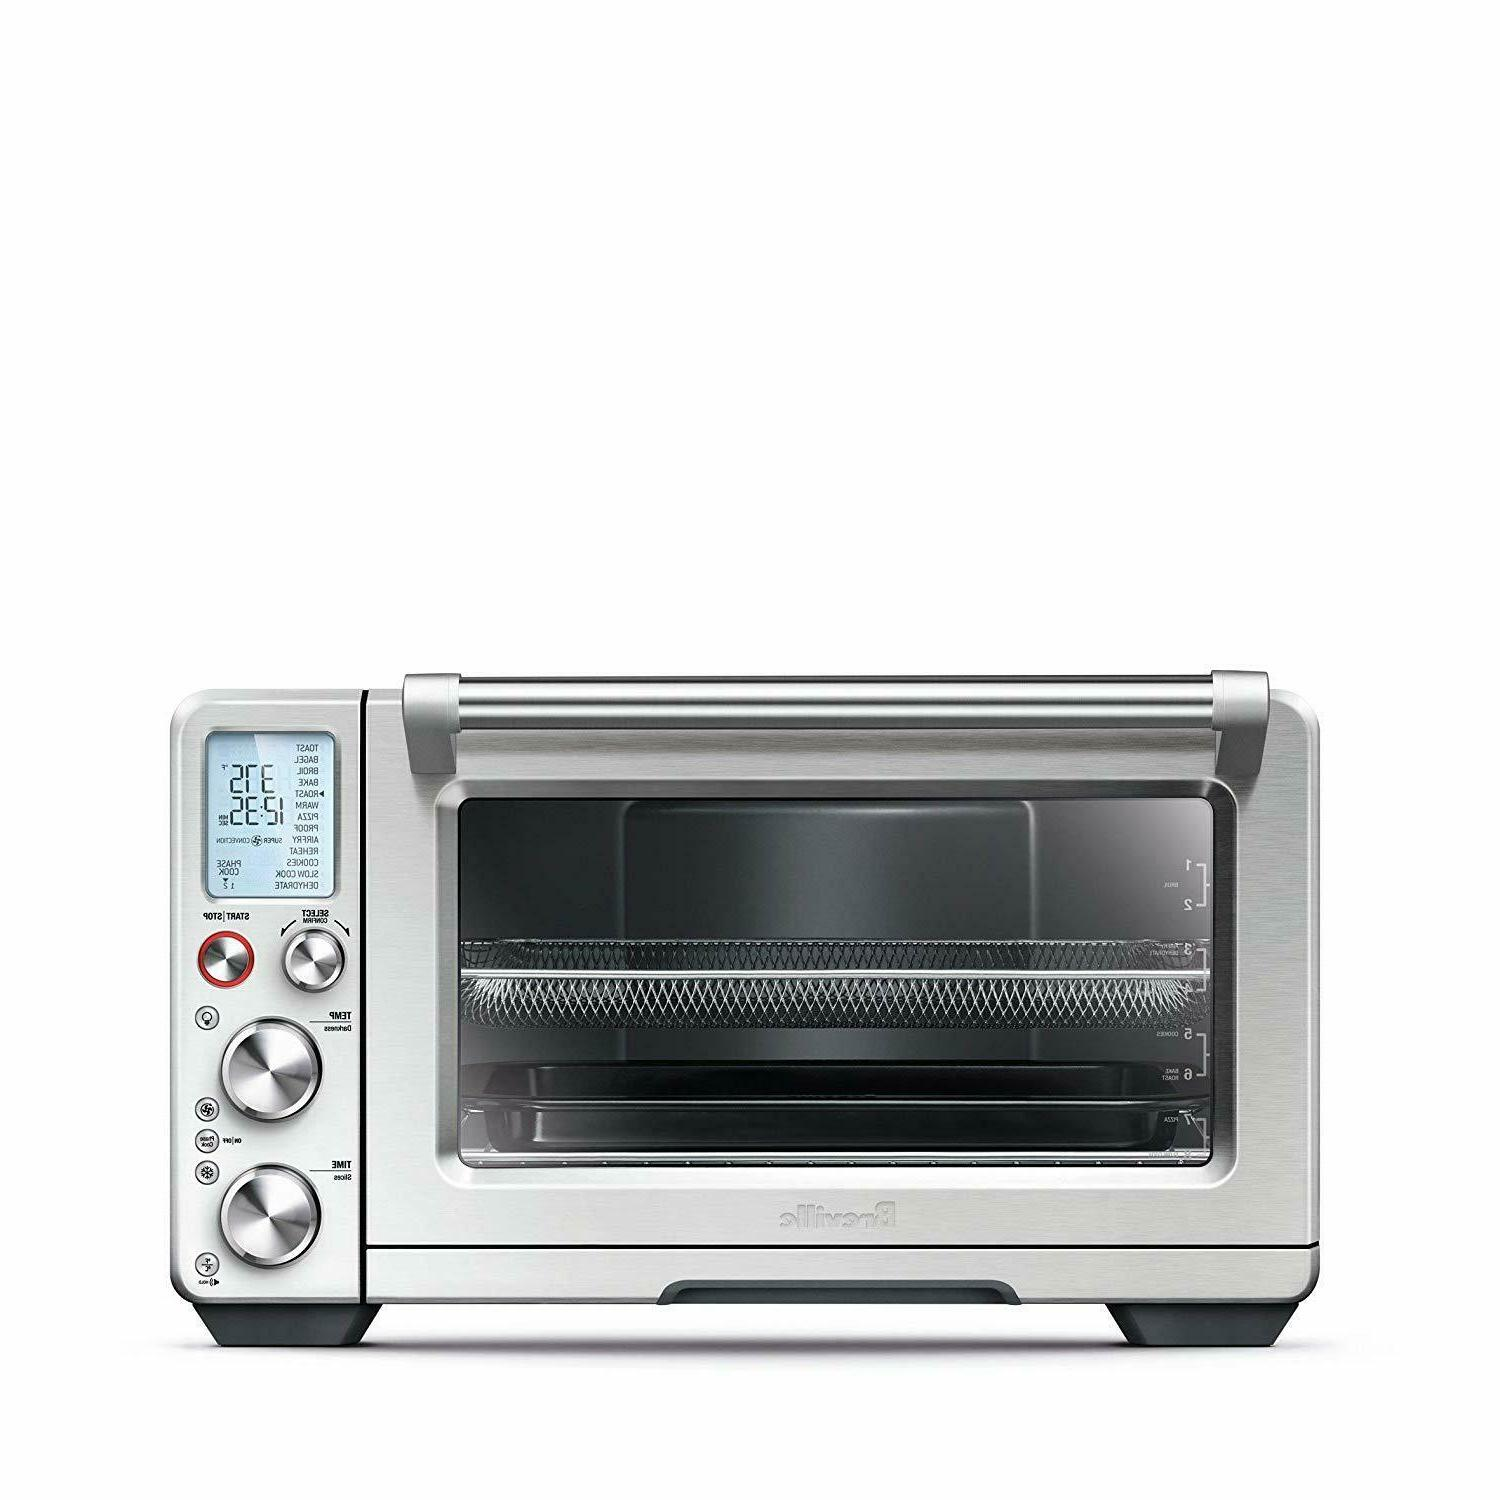 bov900bss convection air fry smart oven air